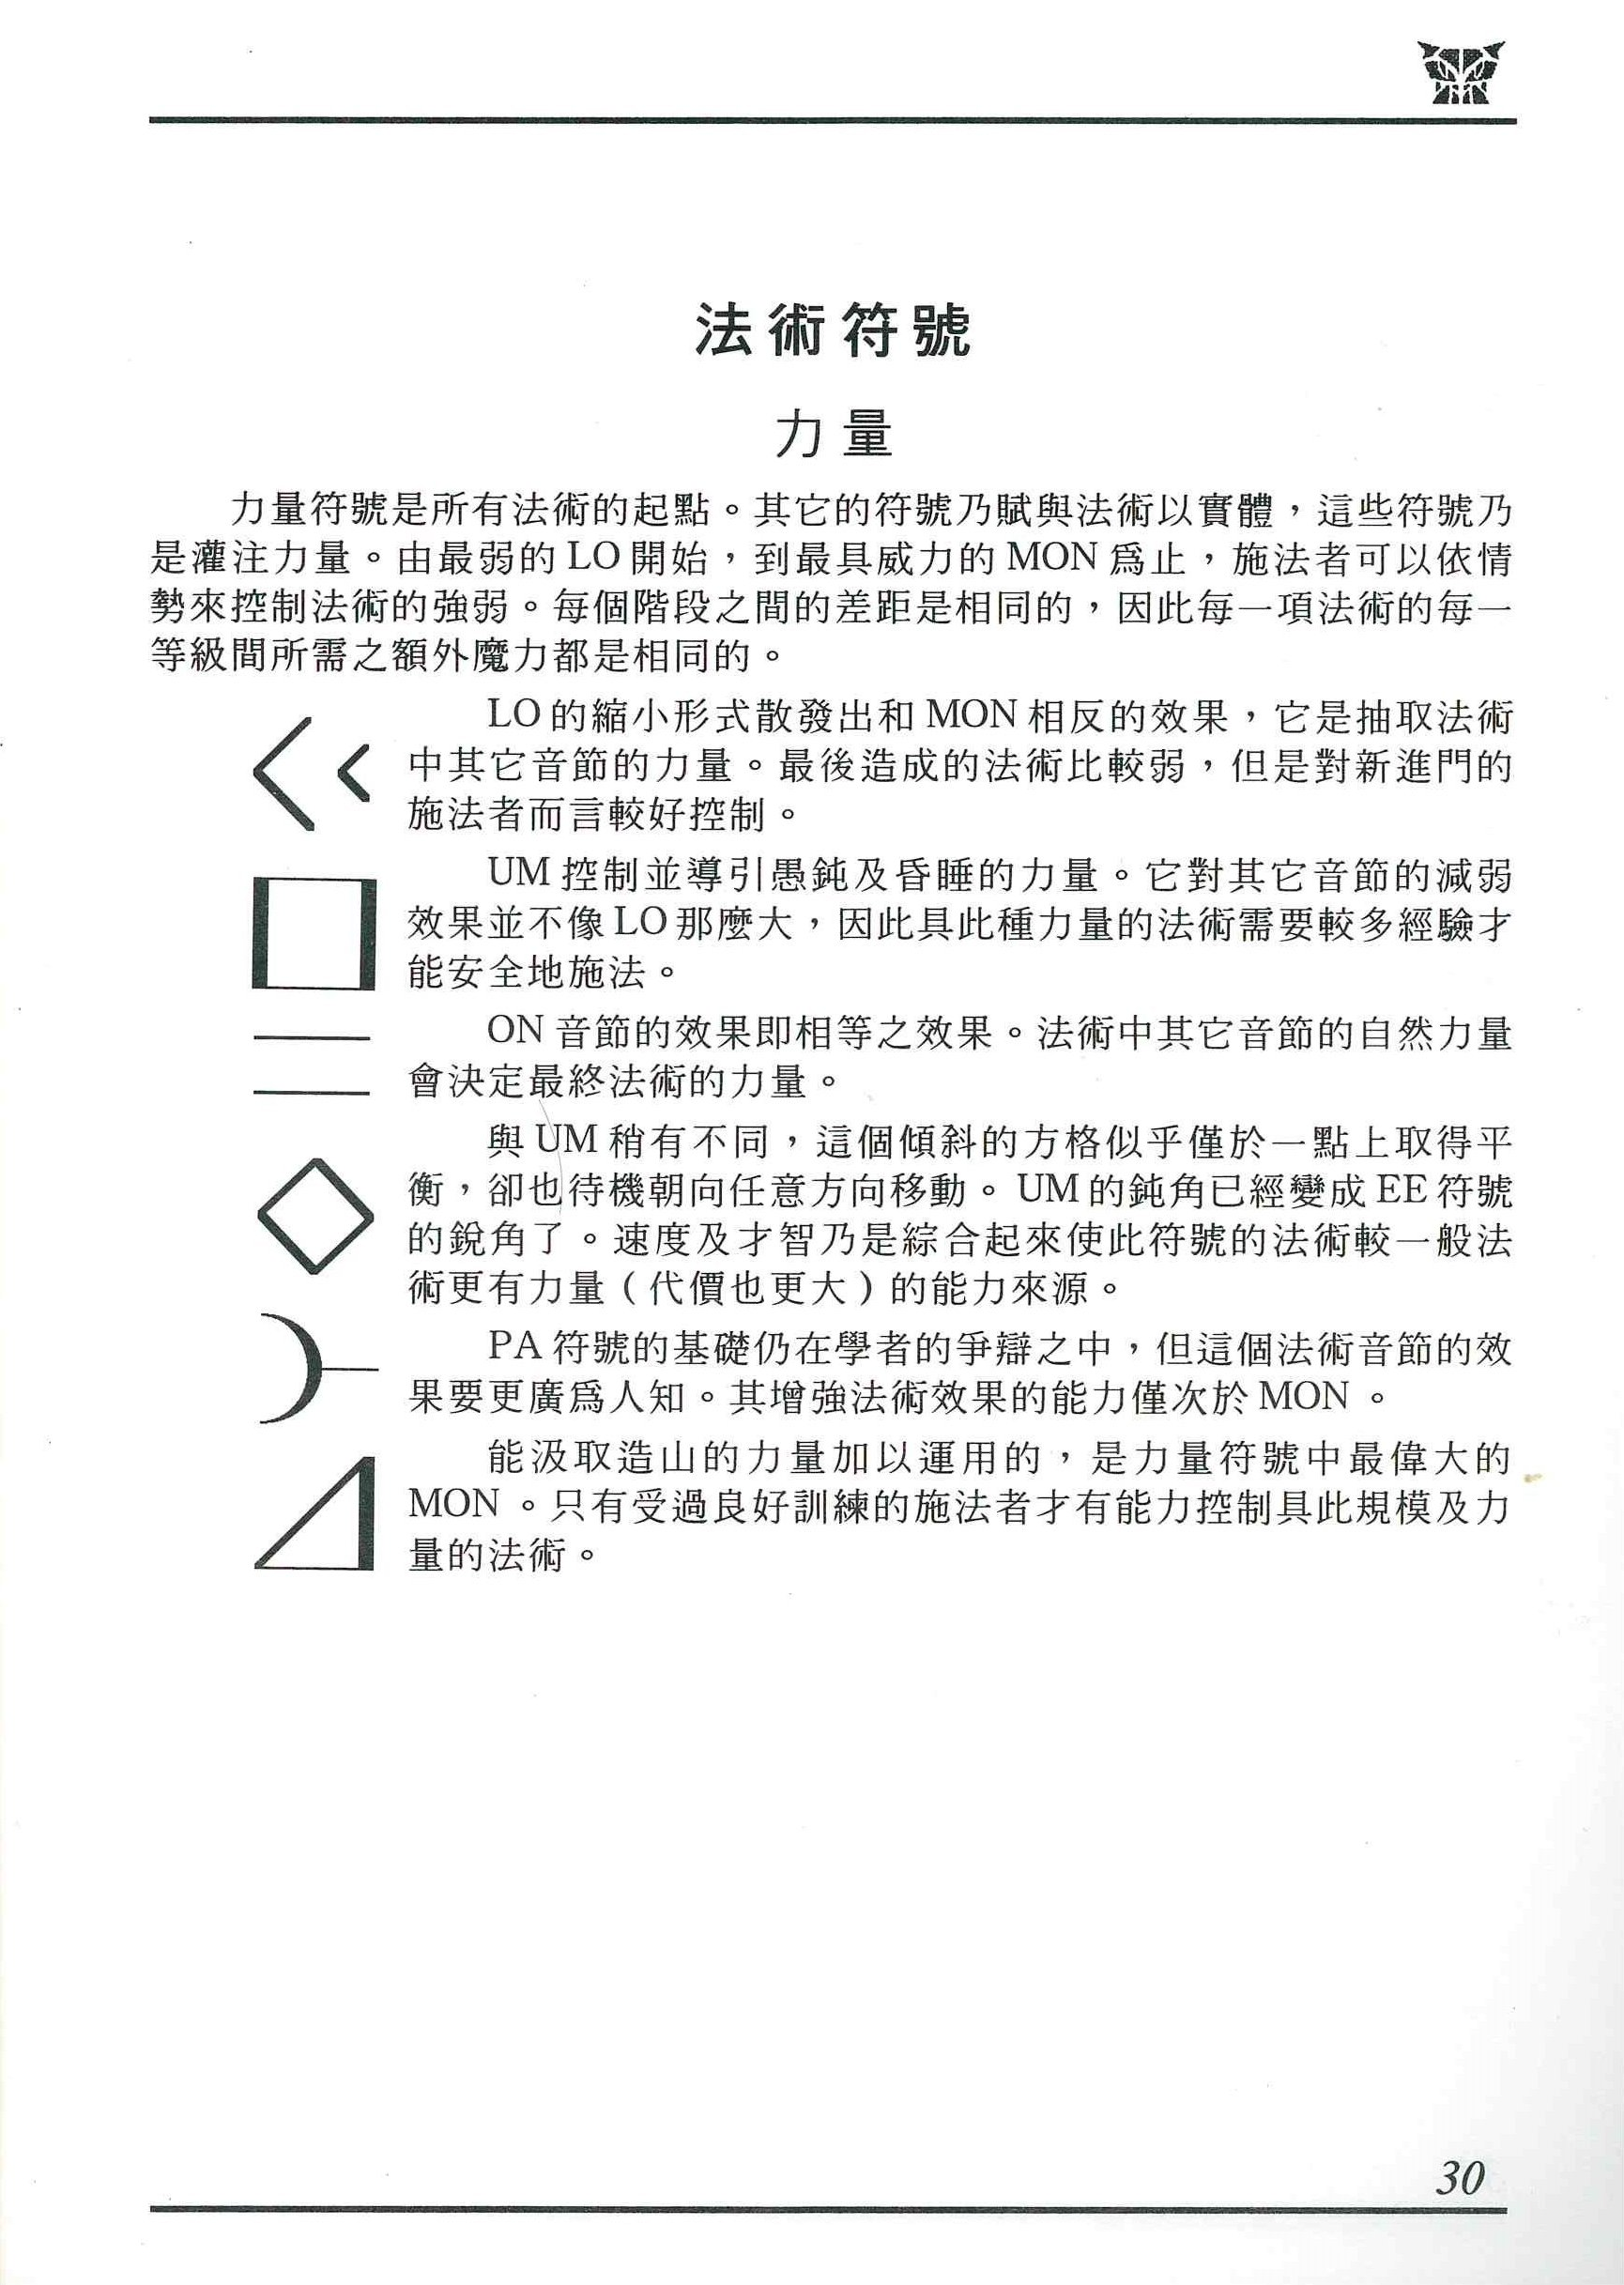 Game - Dungeon Master - CN - PC - Manual - Page 037 - Scan